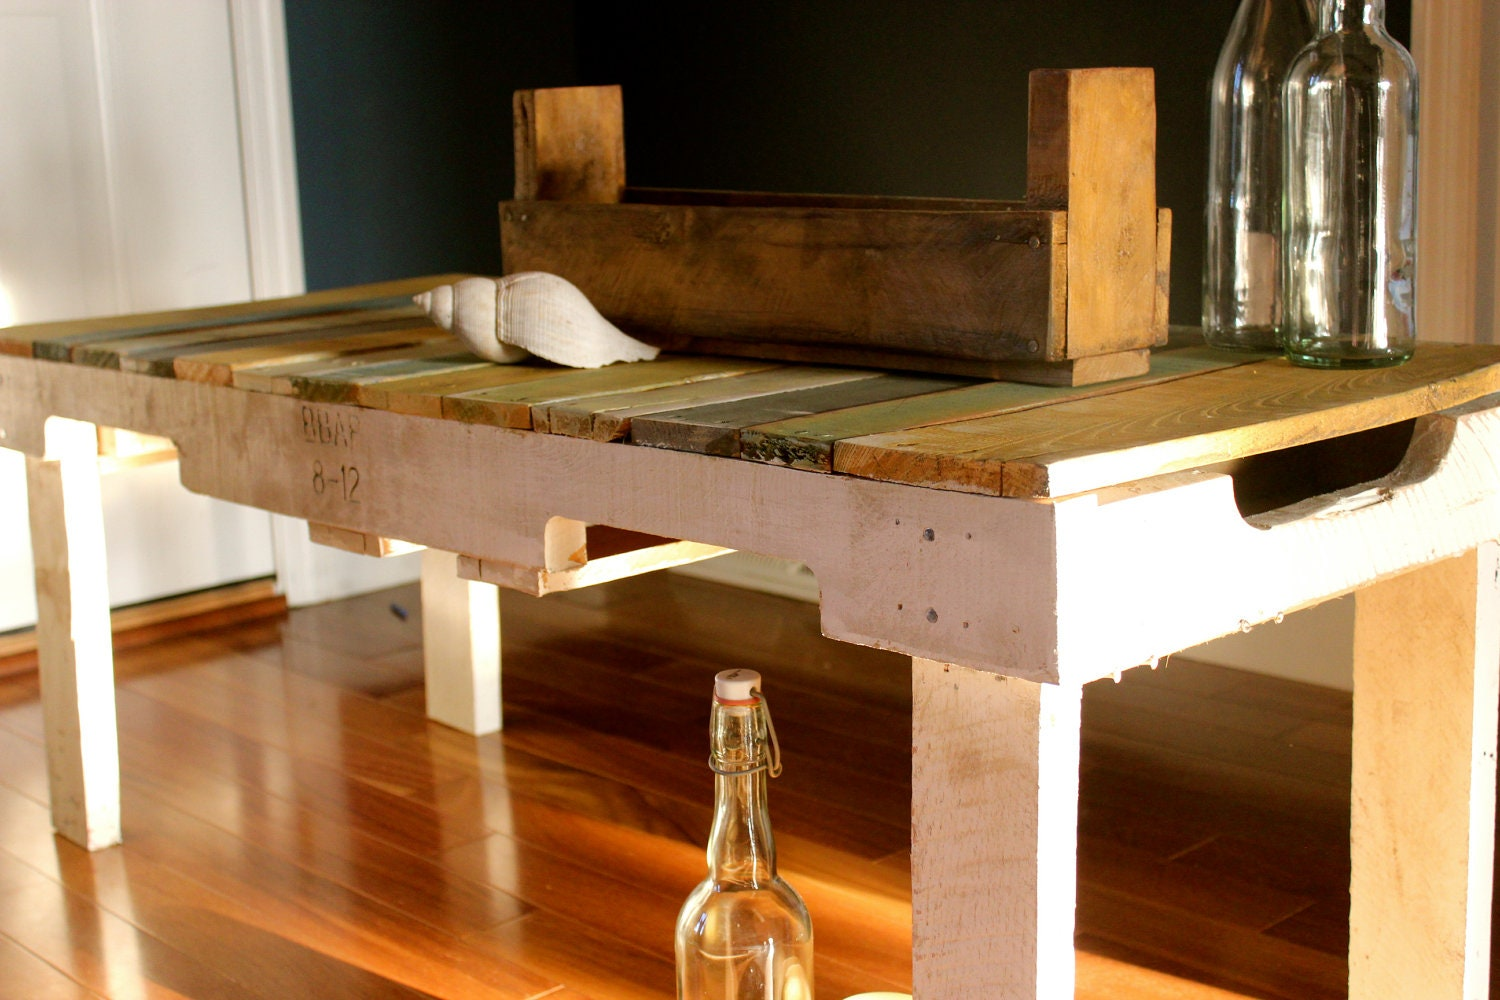 Rustic bench or coffee table pallet bench or table by RuralCoast